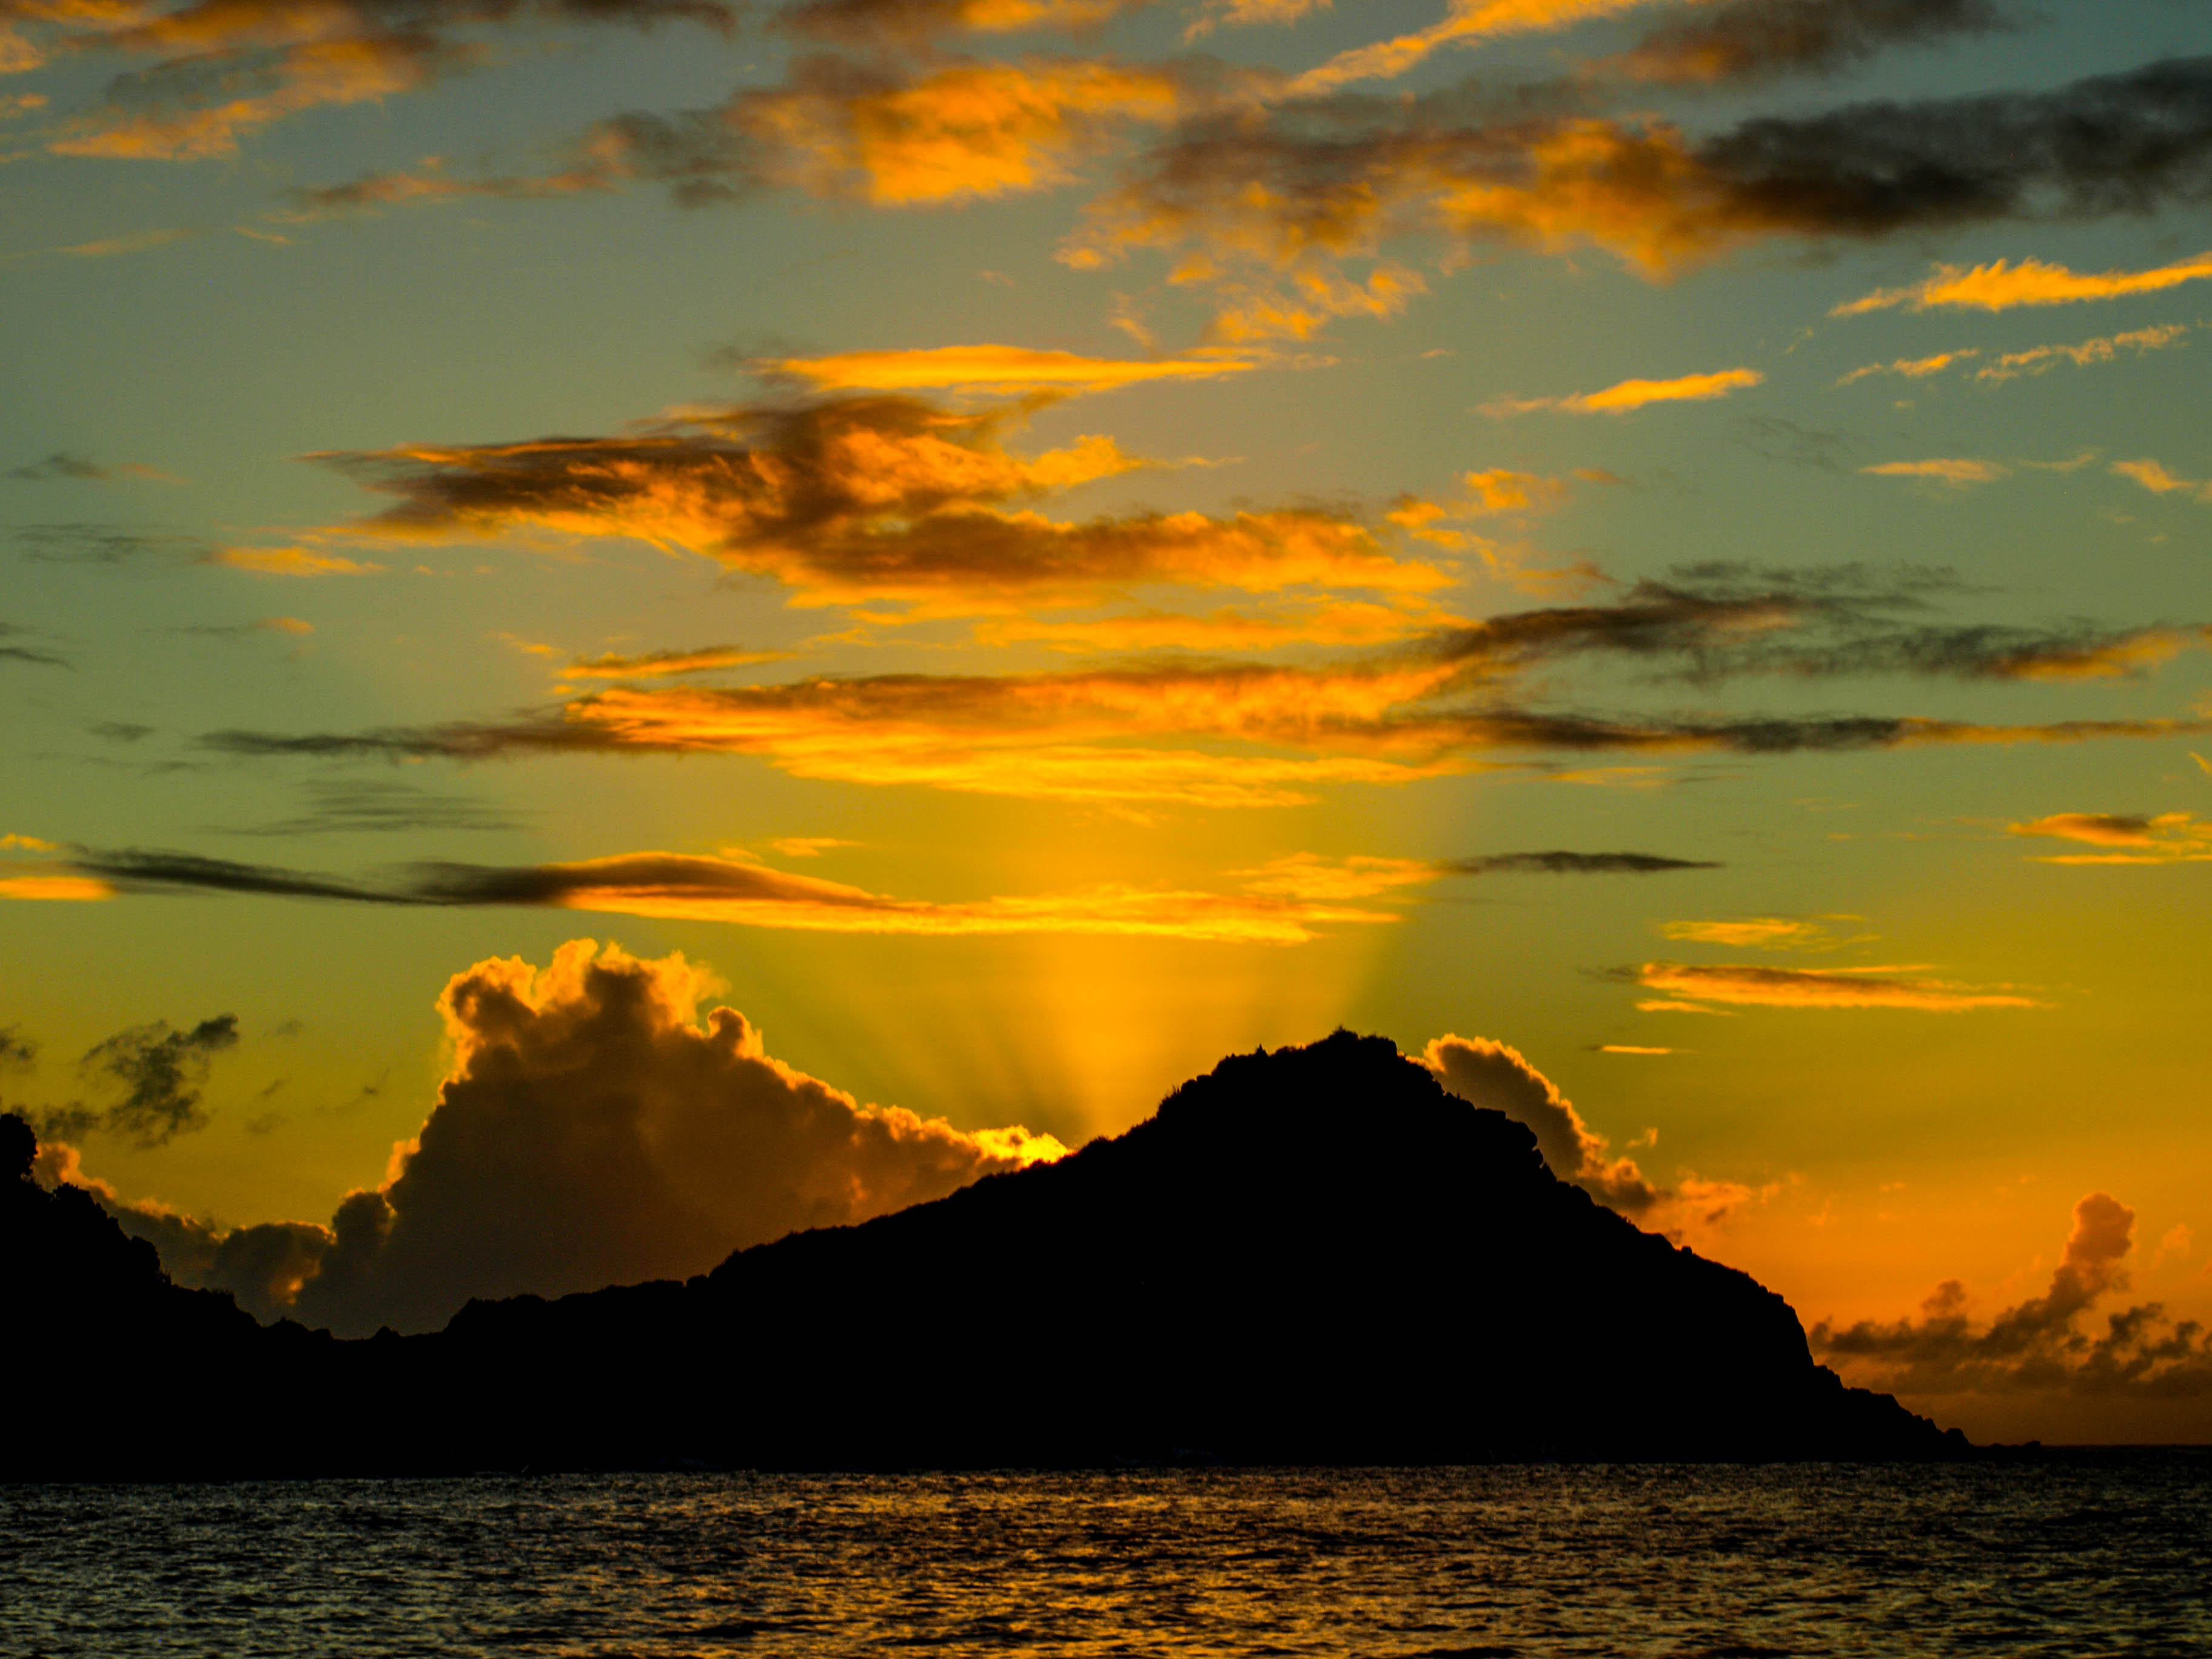 sunrise over Caribbean island